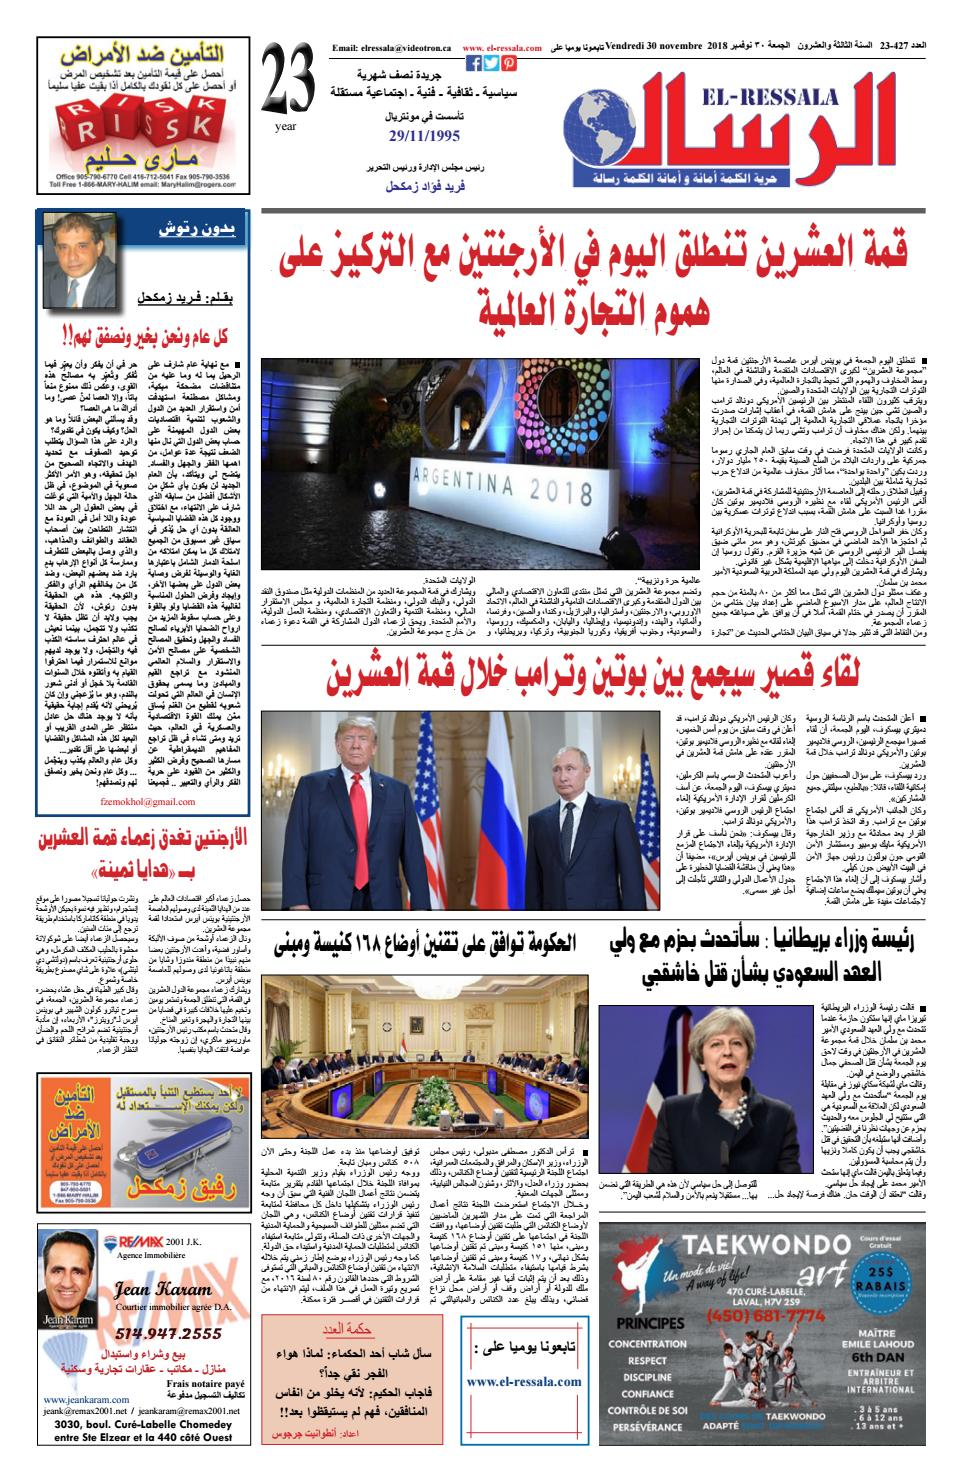 2c1c3ded5 El Ressala newspaper by Elressala Newspaper - issuu